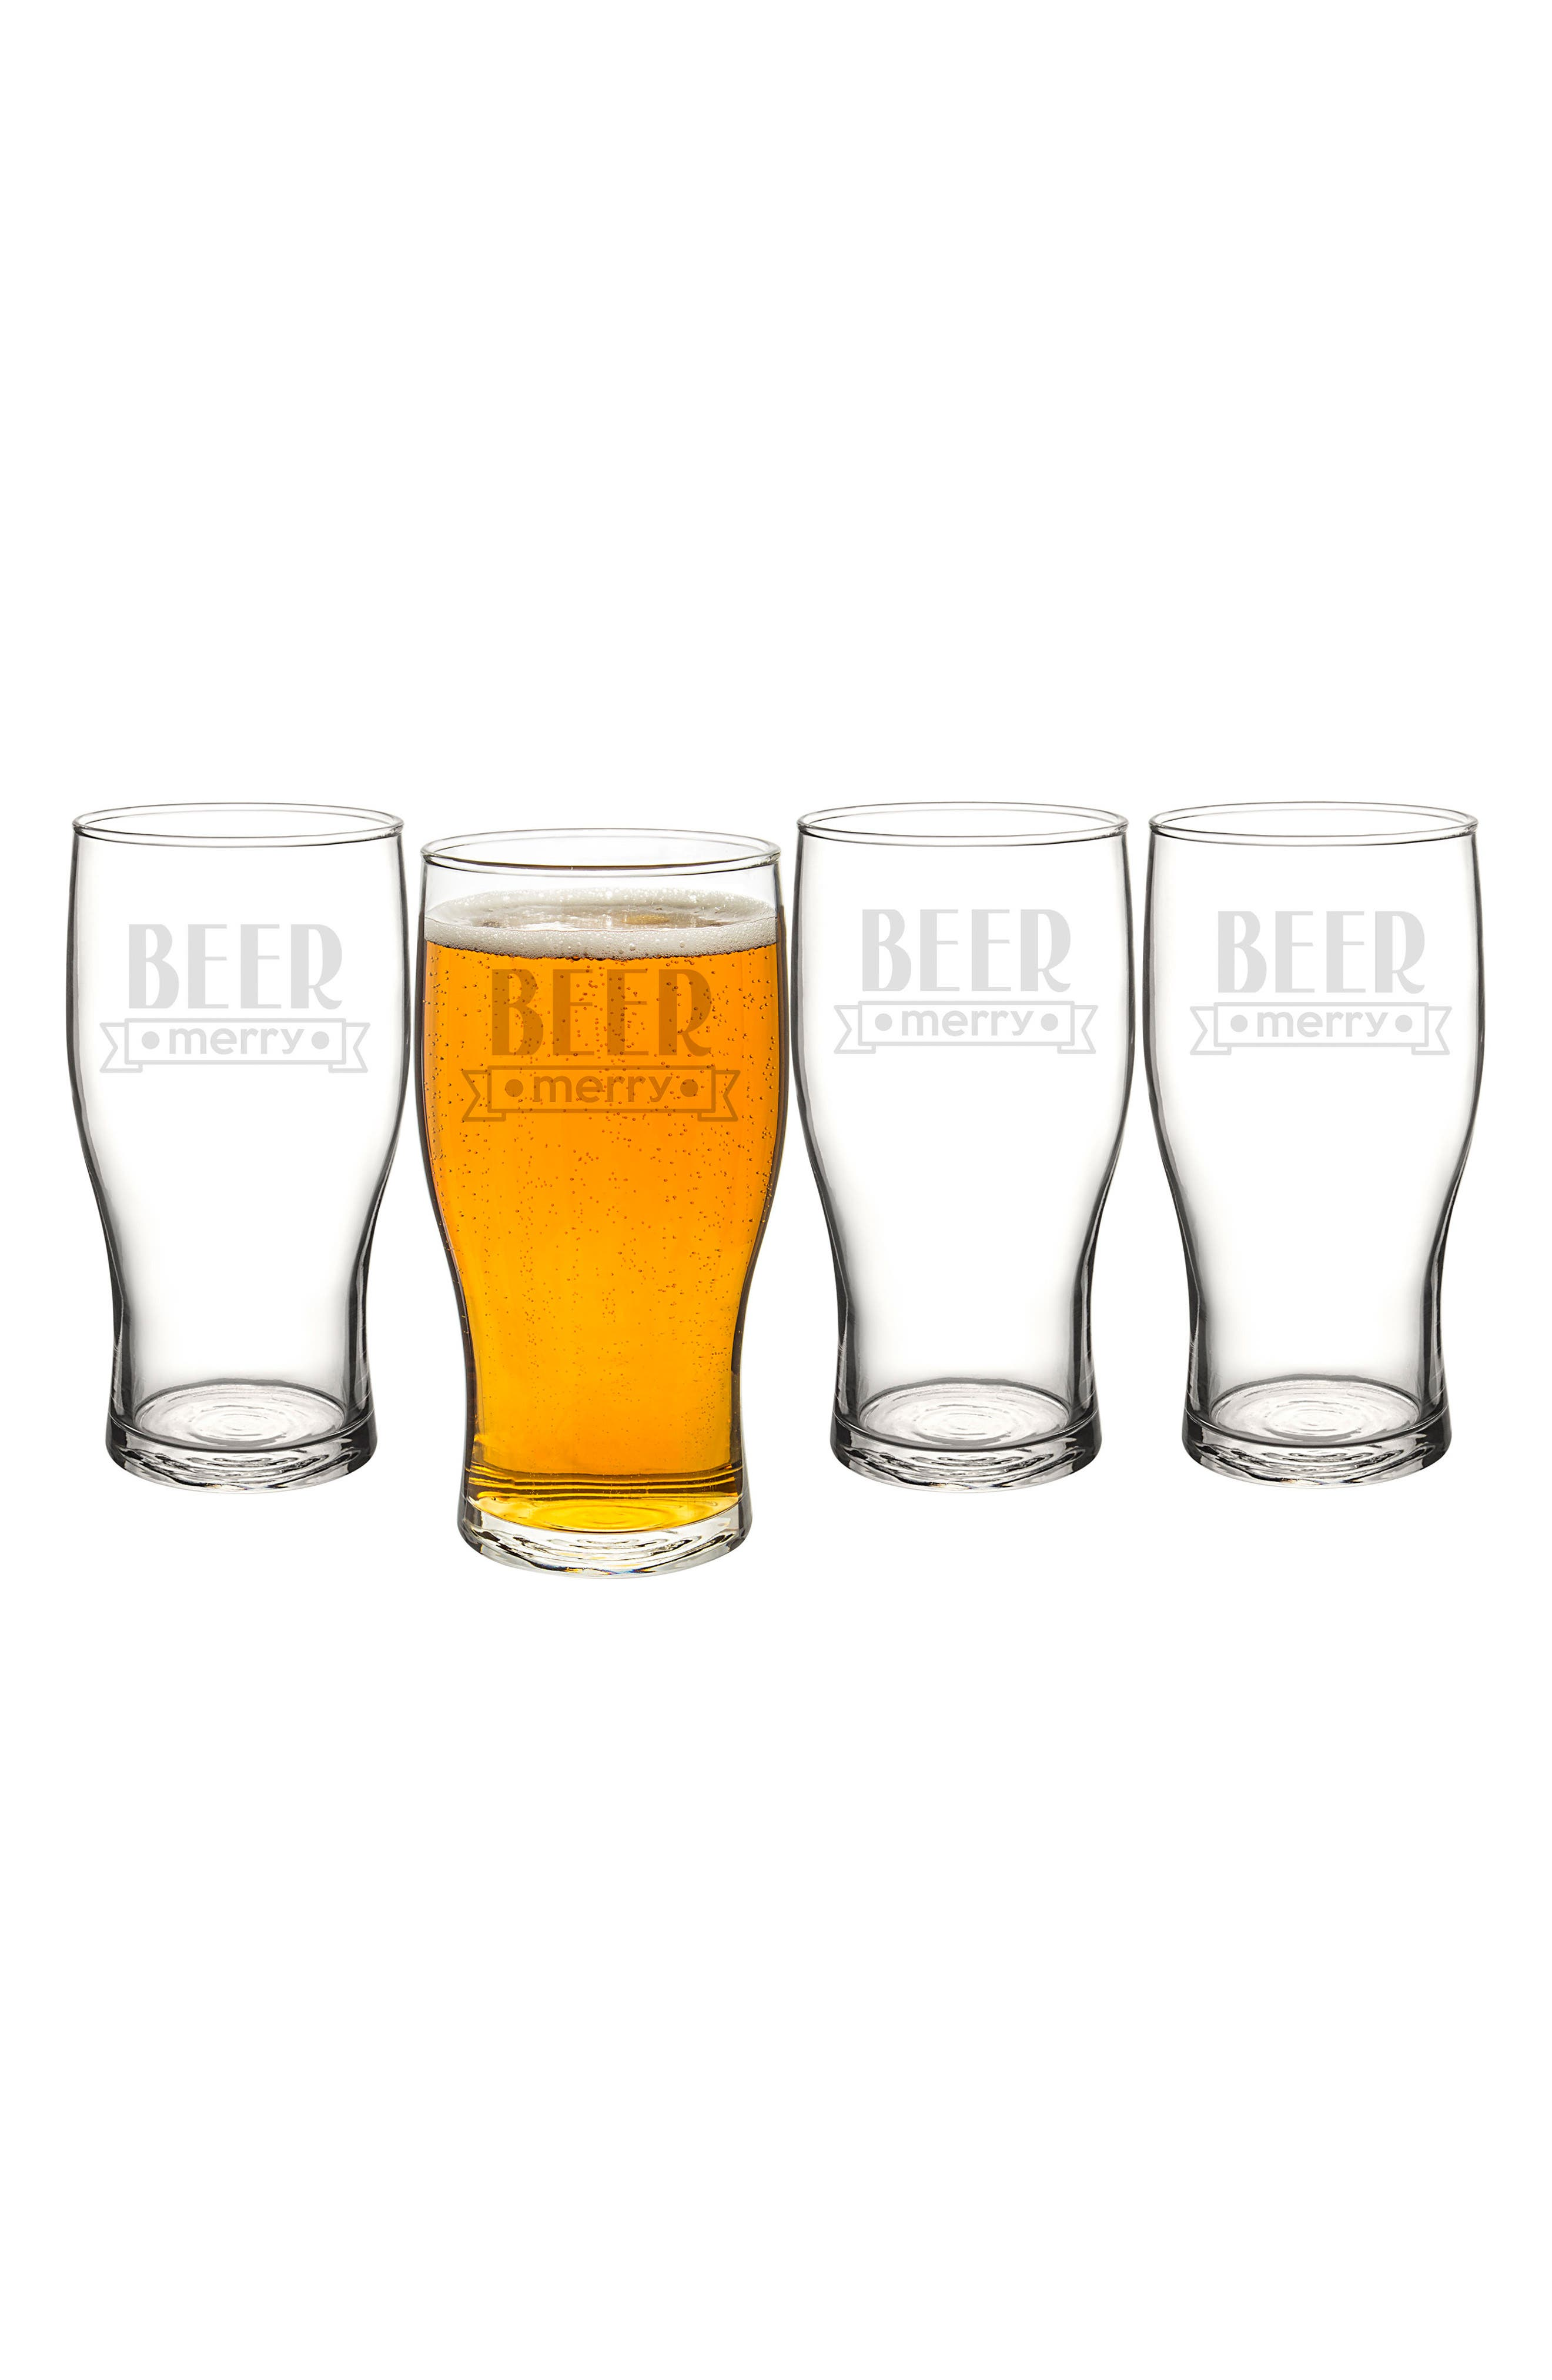 Beer Merry Set of 4 Pilsner Glasses,                             Main thumbnail 1, color,